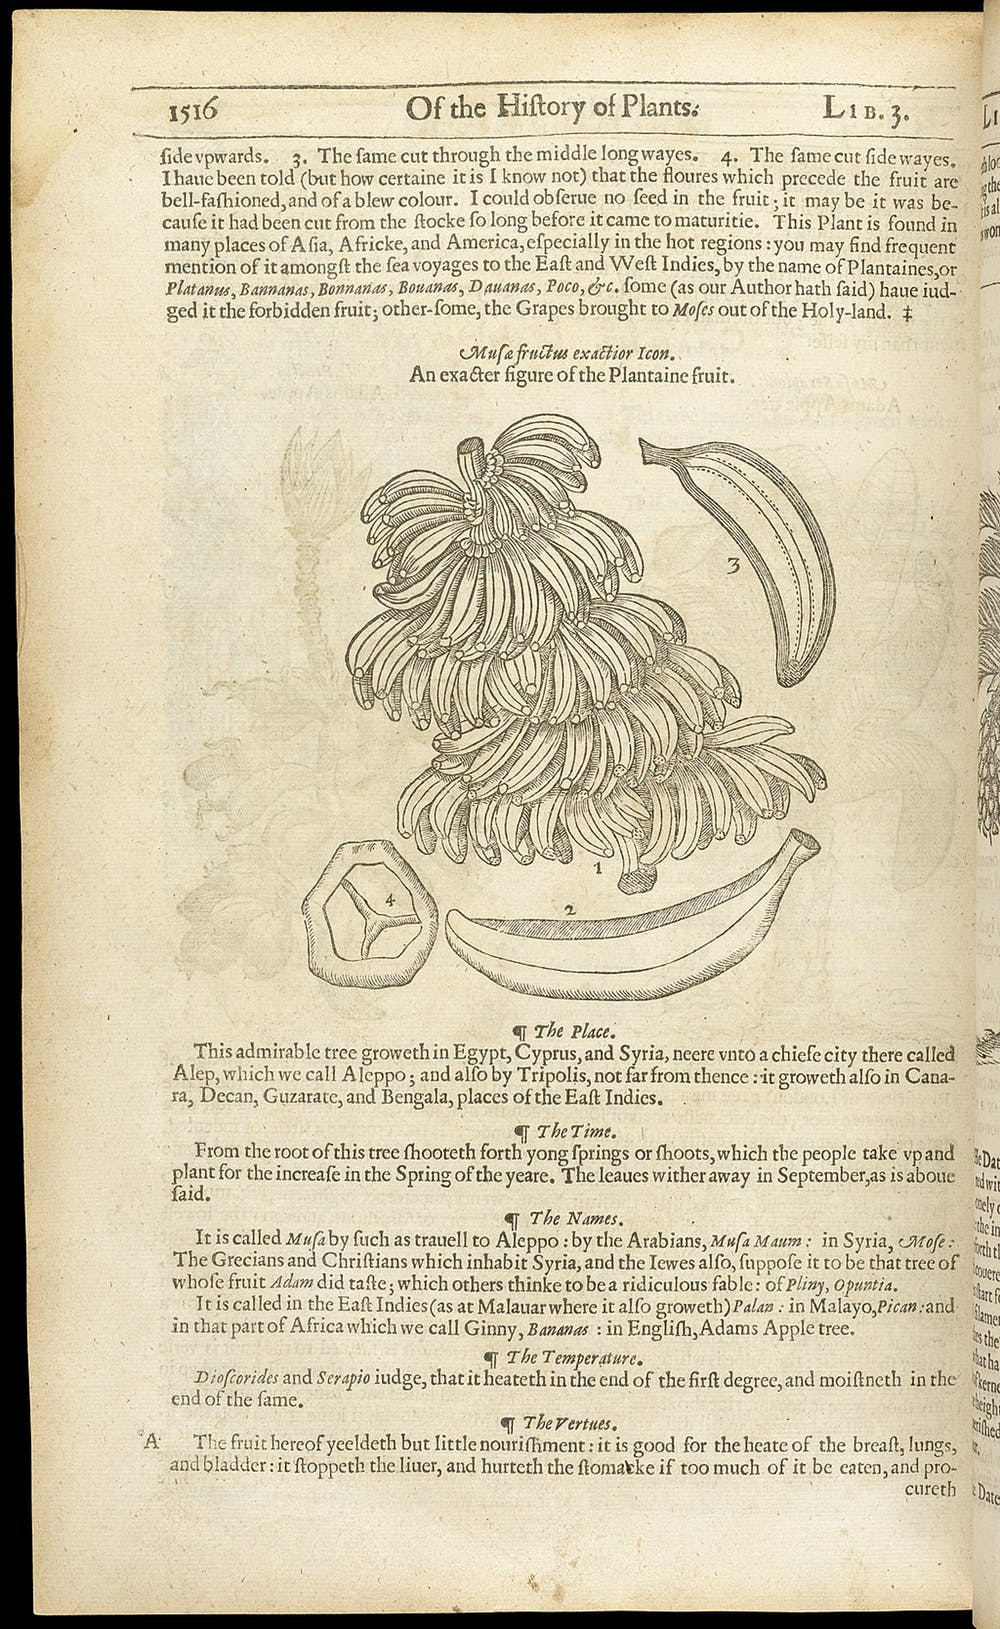 Page 1516 of the Johnson edition of The herball or generall historie of plantes. Photo credit: Wellcome Images/Wikimedia Commons [Licensed under CC BY 4.0]